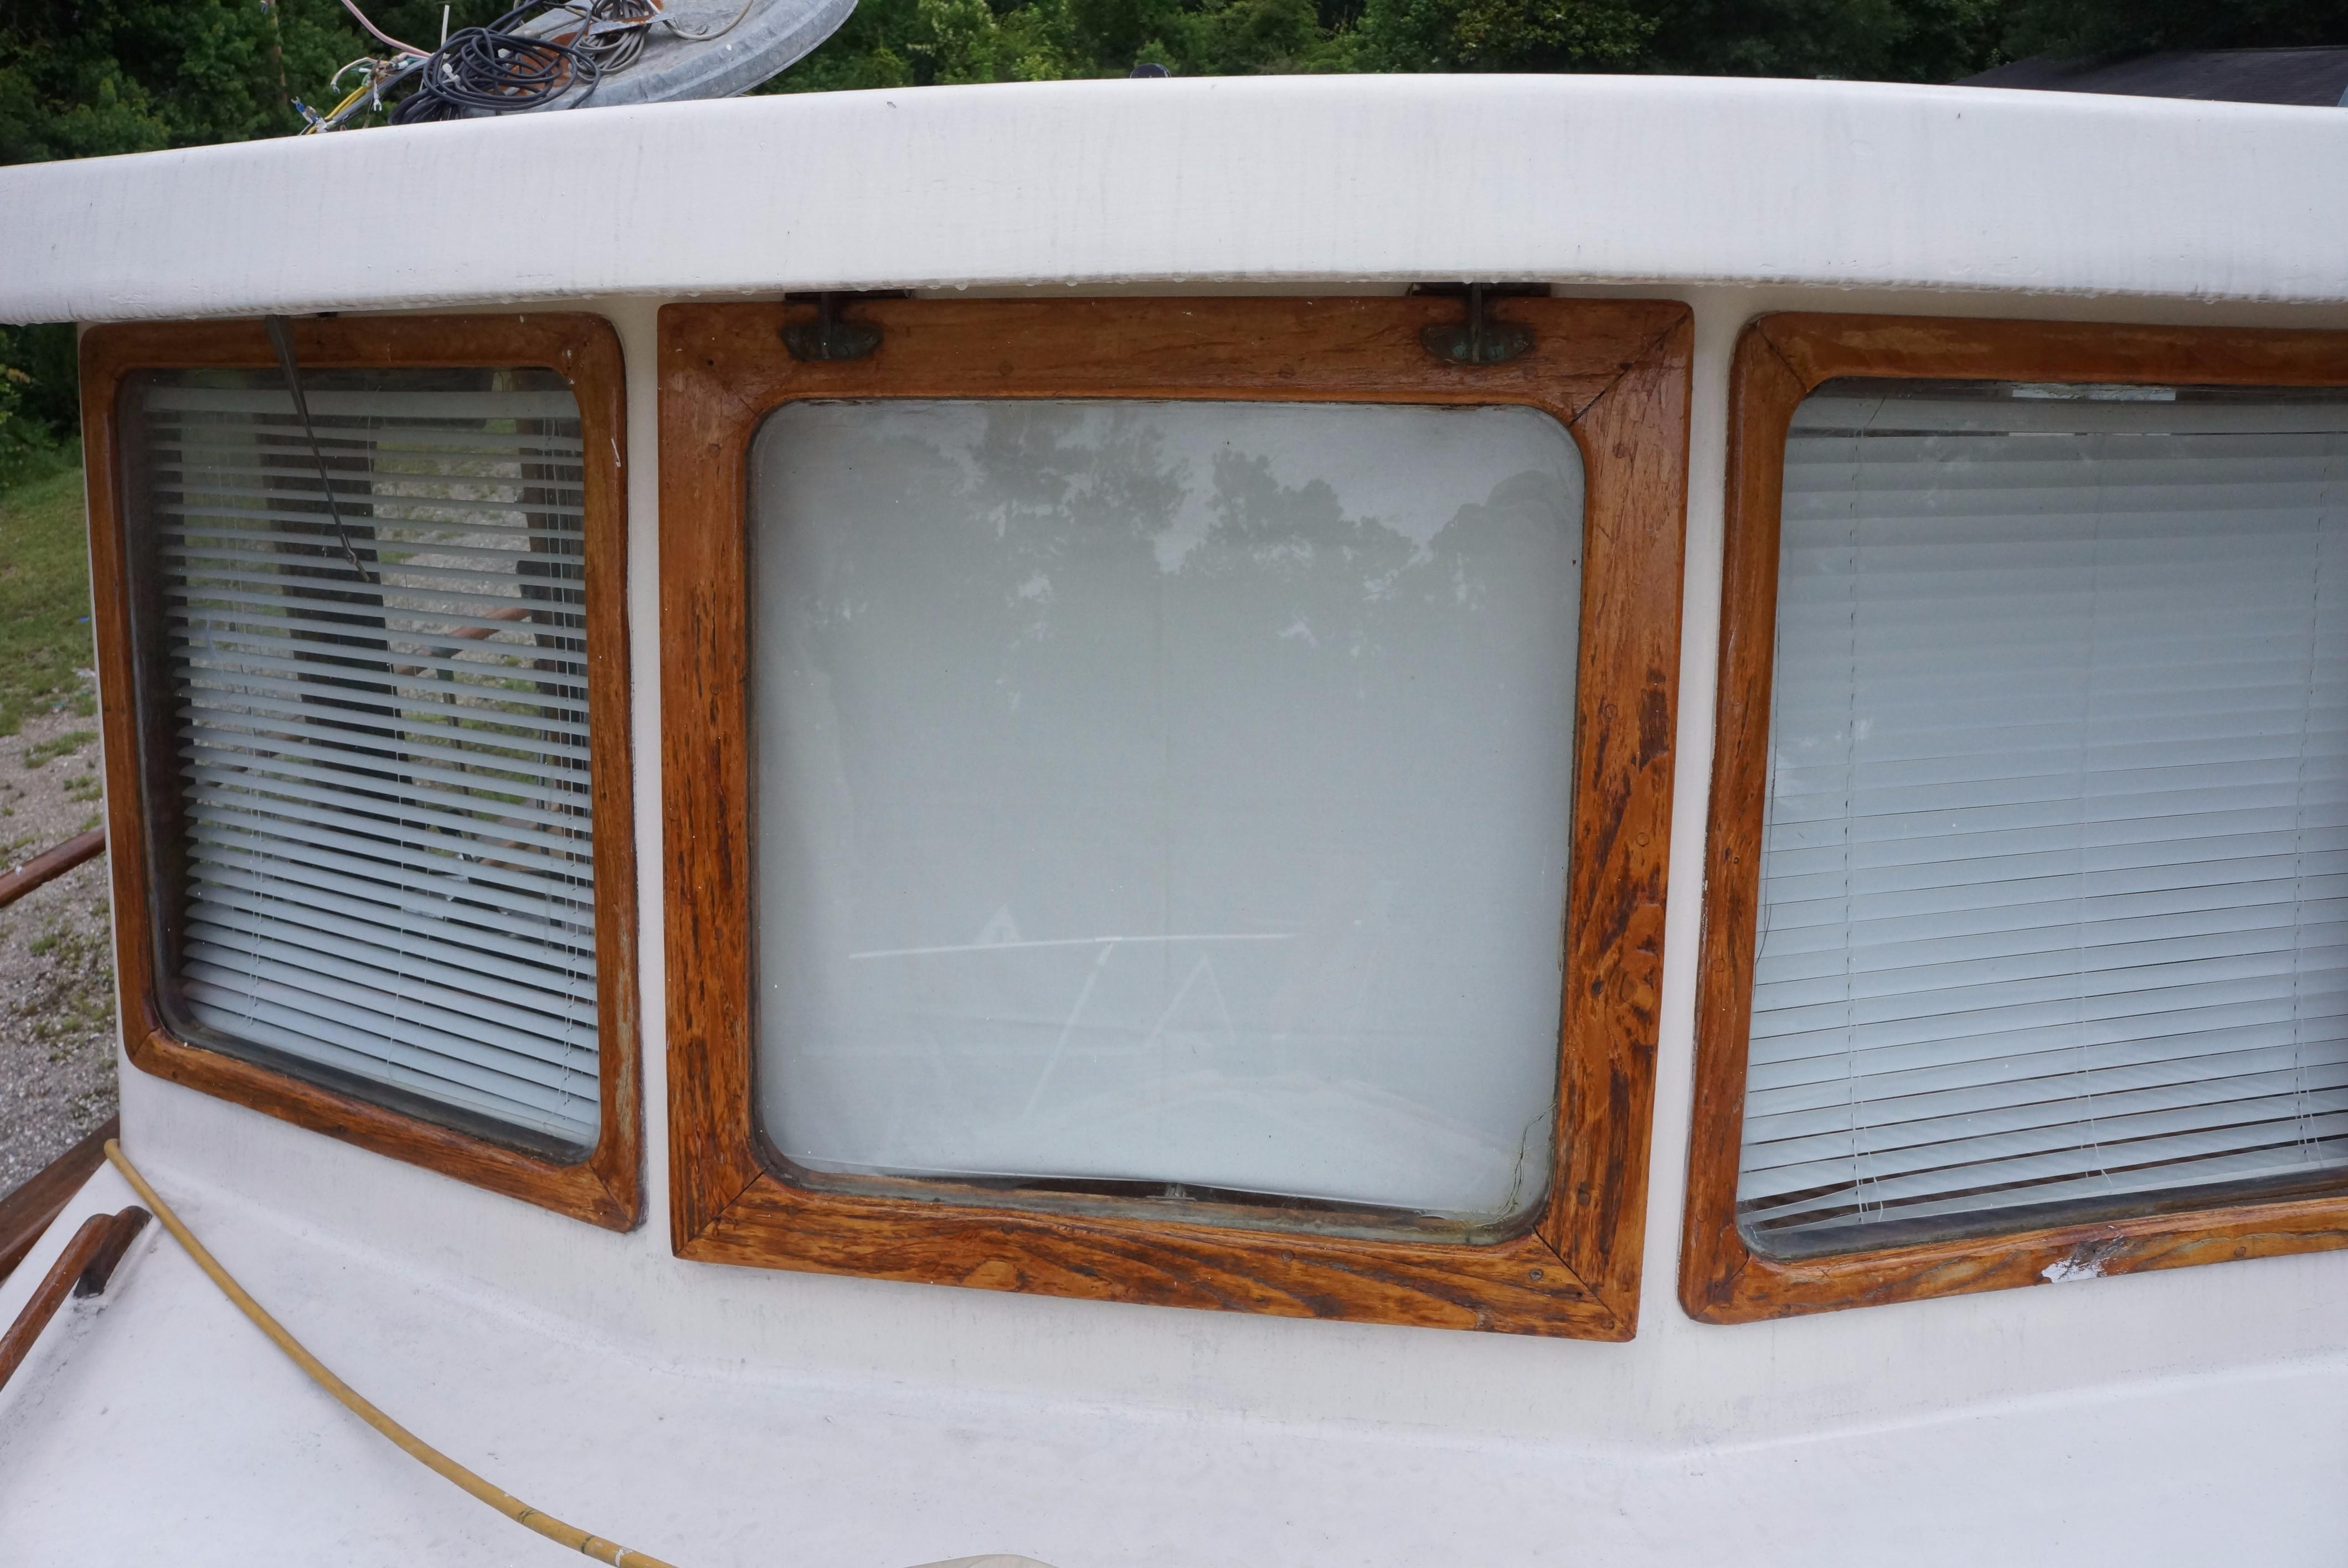 Marine Trader 34 Double Cabin - 34 Marine Trader Pilothouse Windows